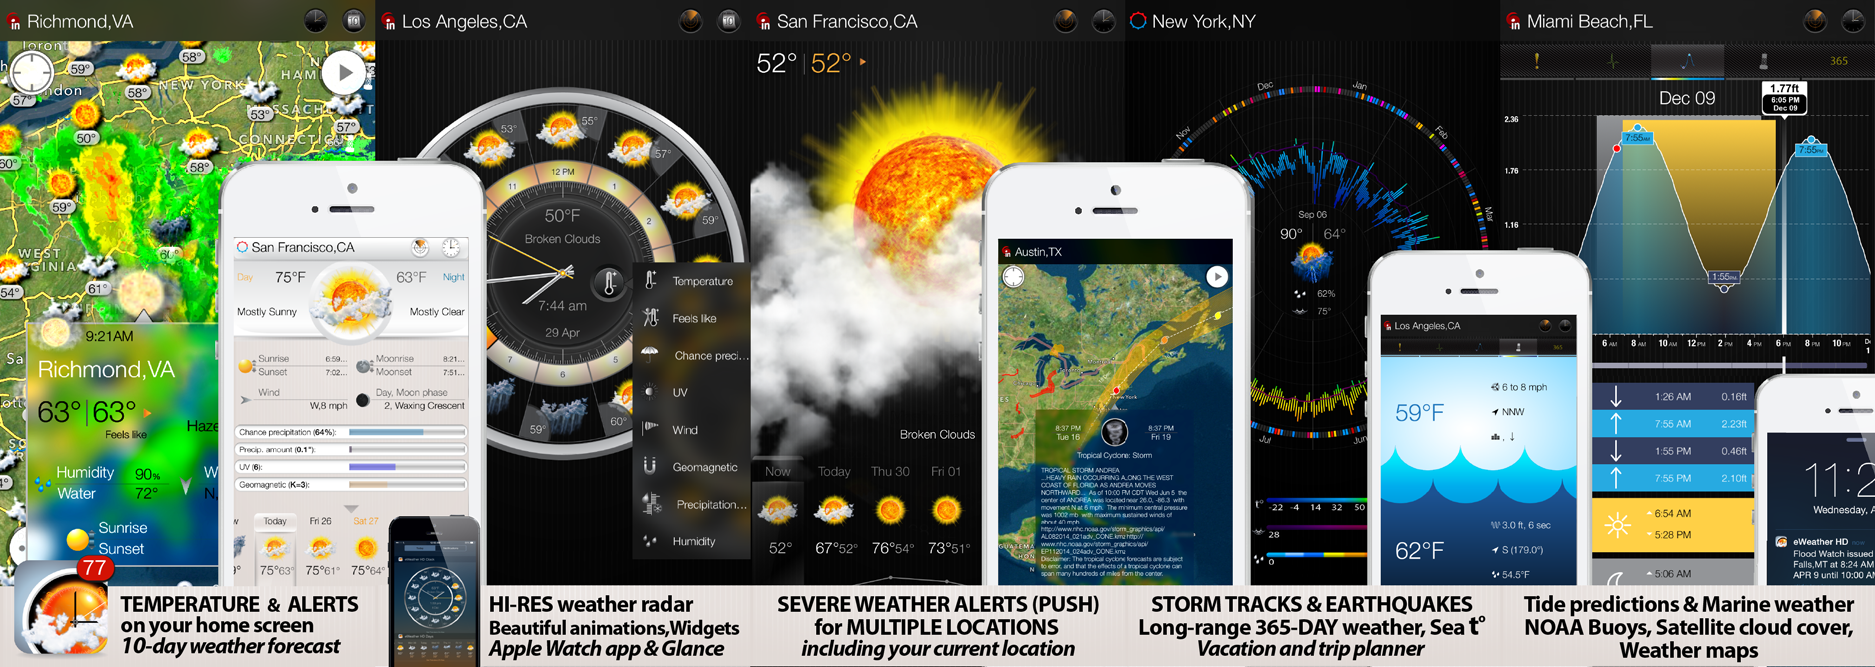 eWeather HD 3.6 for iPhone, iPad and Weather app for Apple Watch- the most informative weather app for Apple Watch, iPhone, iPad, PUSH alerts, radar, storm-tracker, earthquake, NOAA buoys app and weather widgets for iOS 9, WatchOS 2, 10-day weather forecast, accurate hour-by-hour with weather clock widget, NWS weather alerts for USA and Meteoalarm alerts for Europe, hi-def rain/snow radar, animated satellite cloud cover, PUSH weather alerts, sea beach water temperatures, NOAA buoys and earthquakes, interactive weather maps, long-range weather forecasts, tide predictions, high and low tide times - Elecont LLC